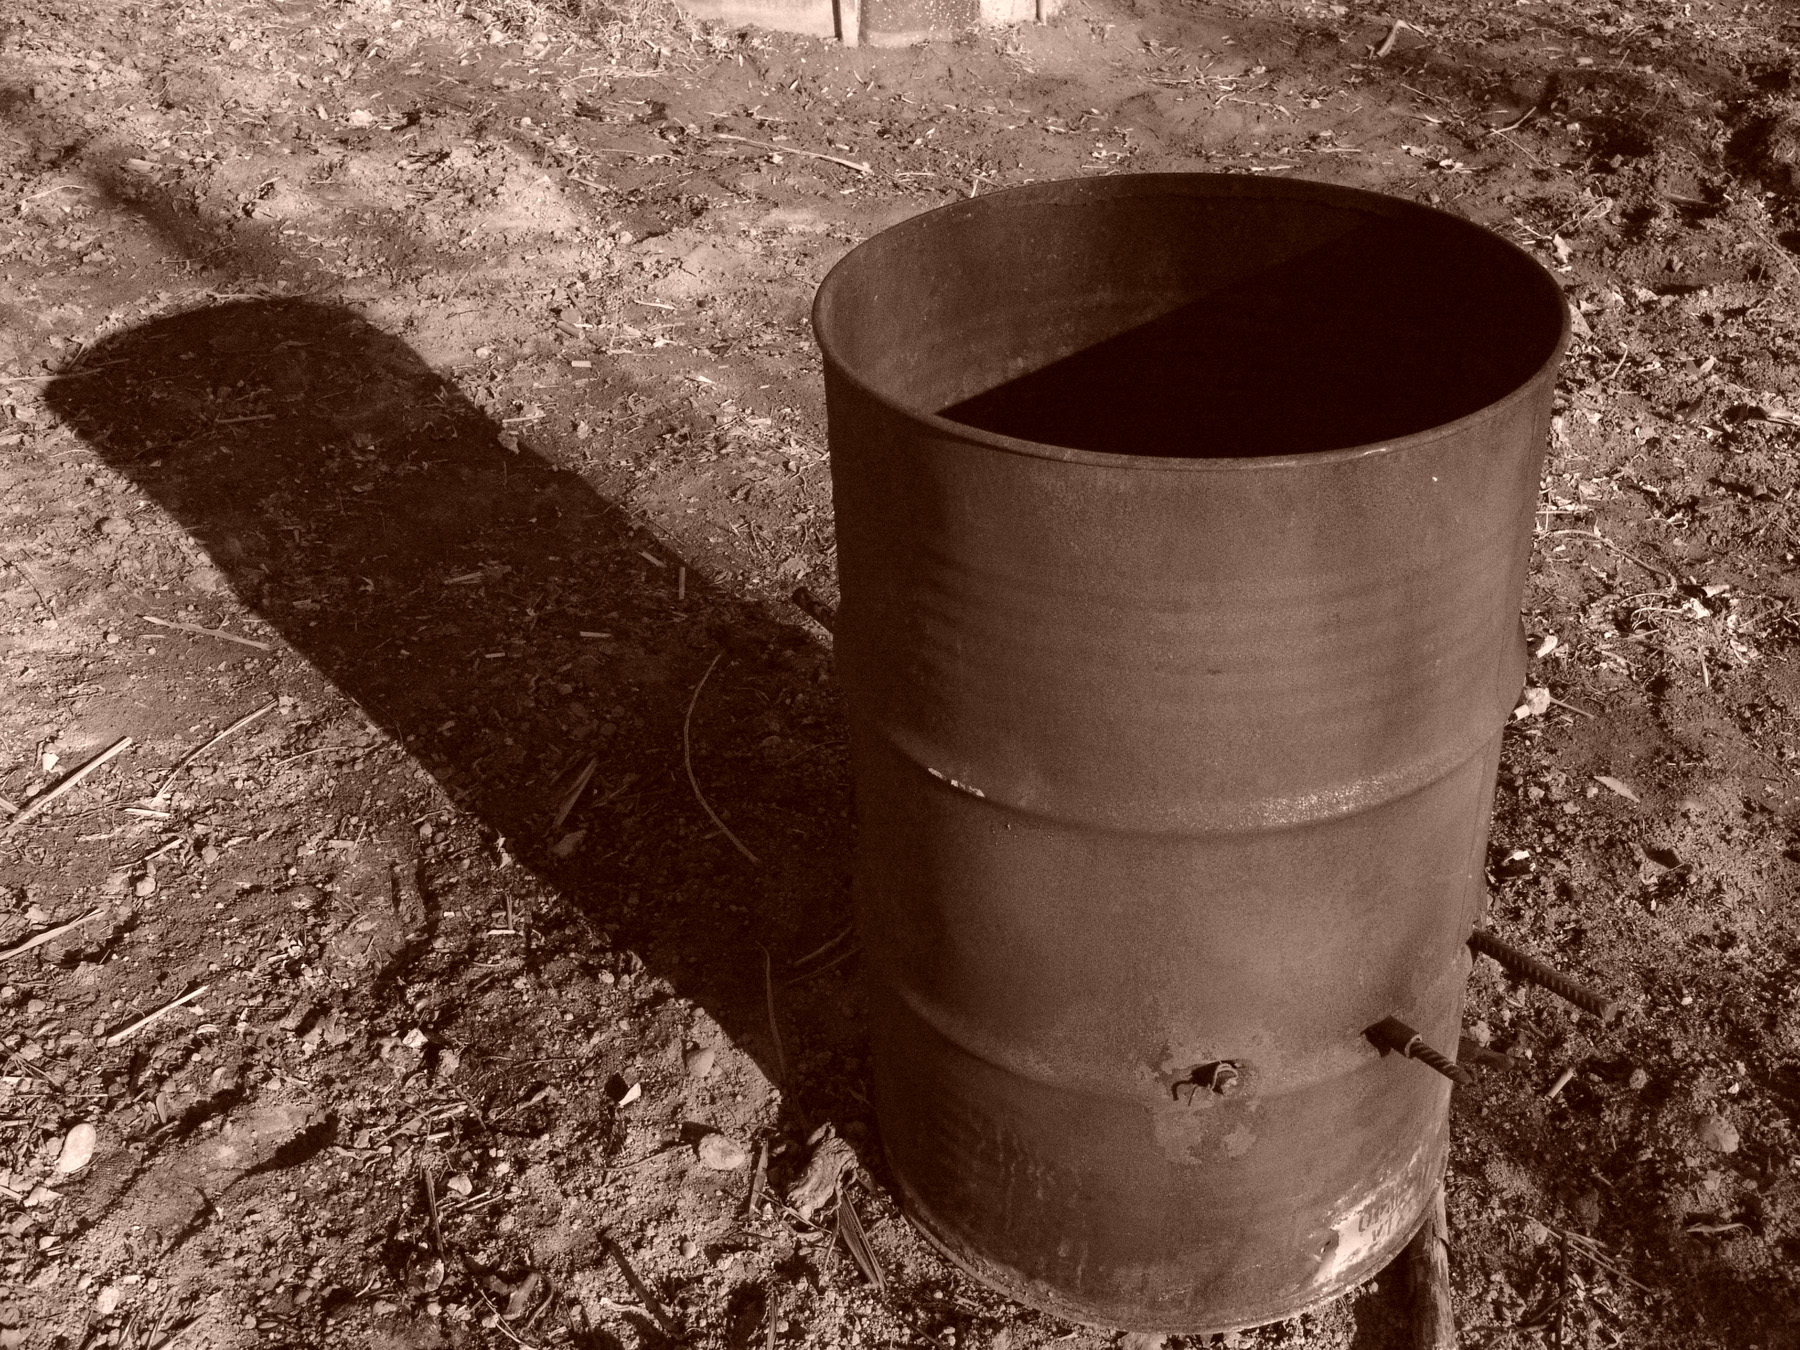 Rusted barrel, Barrel, Brownish, Container, Rusted, HQ Photo